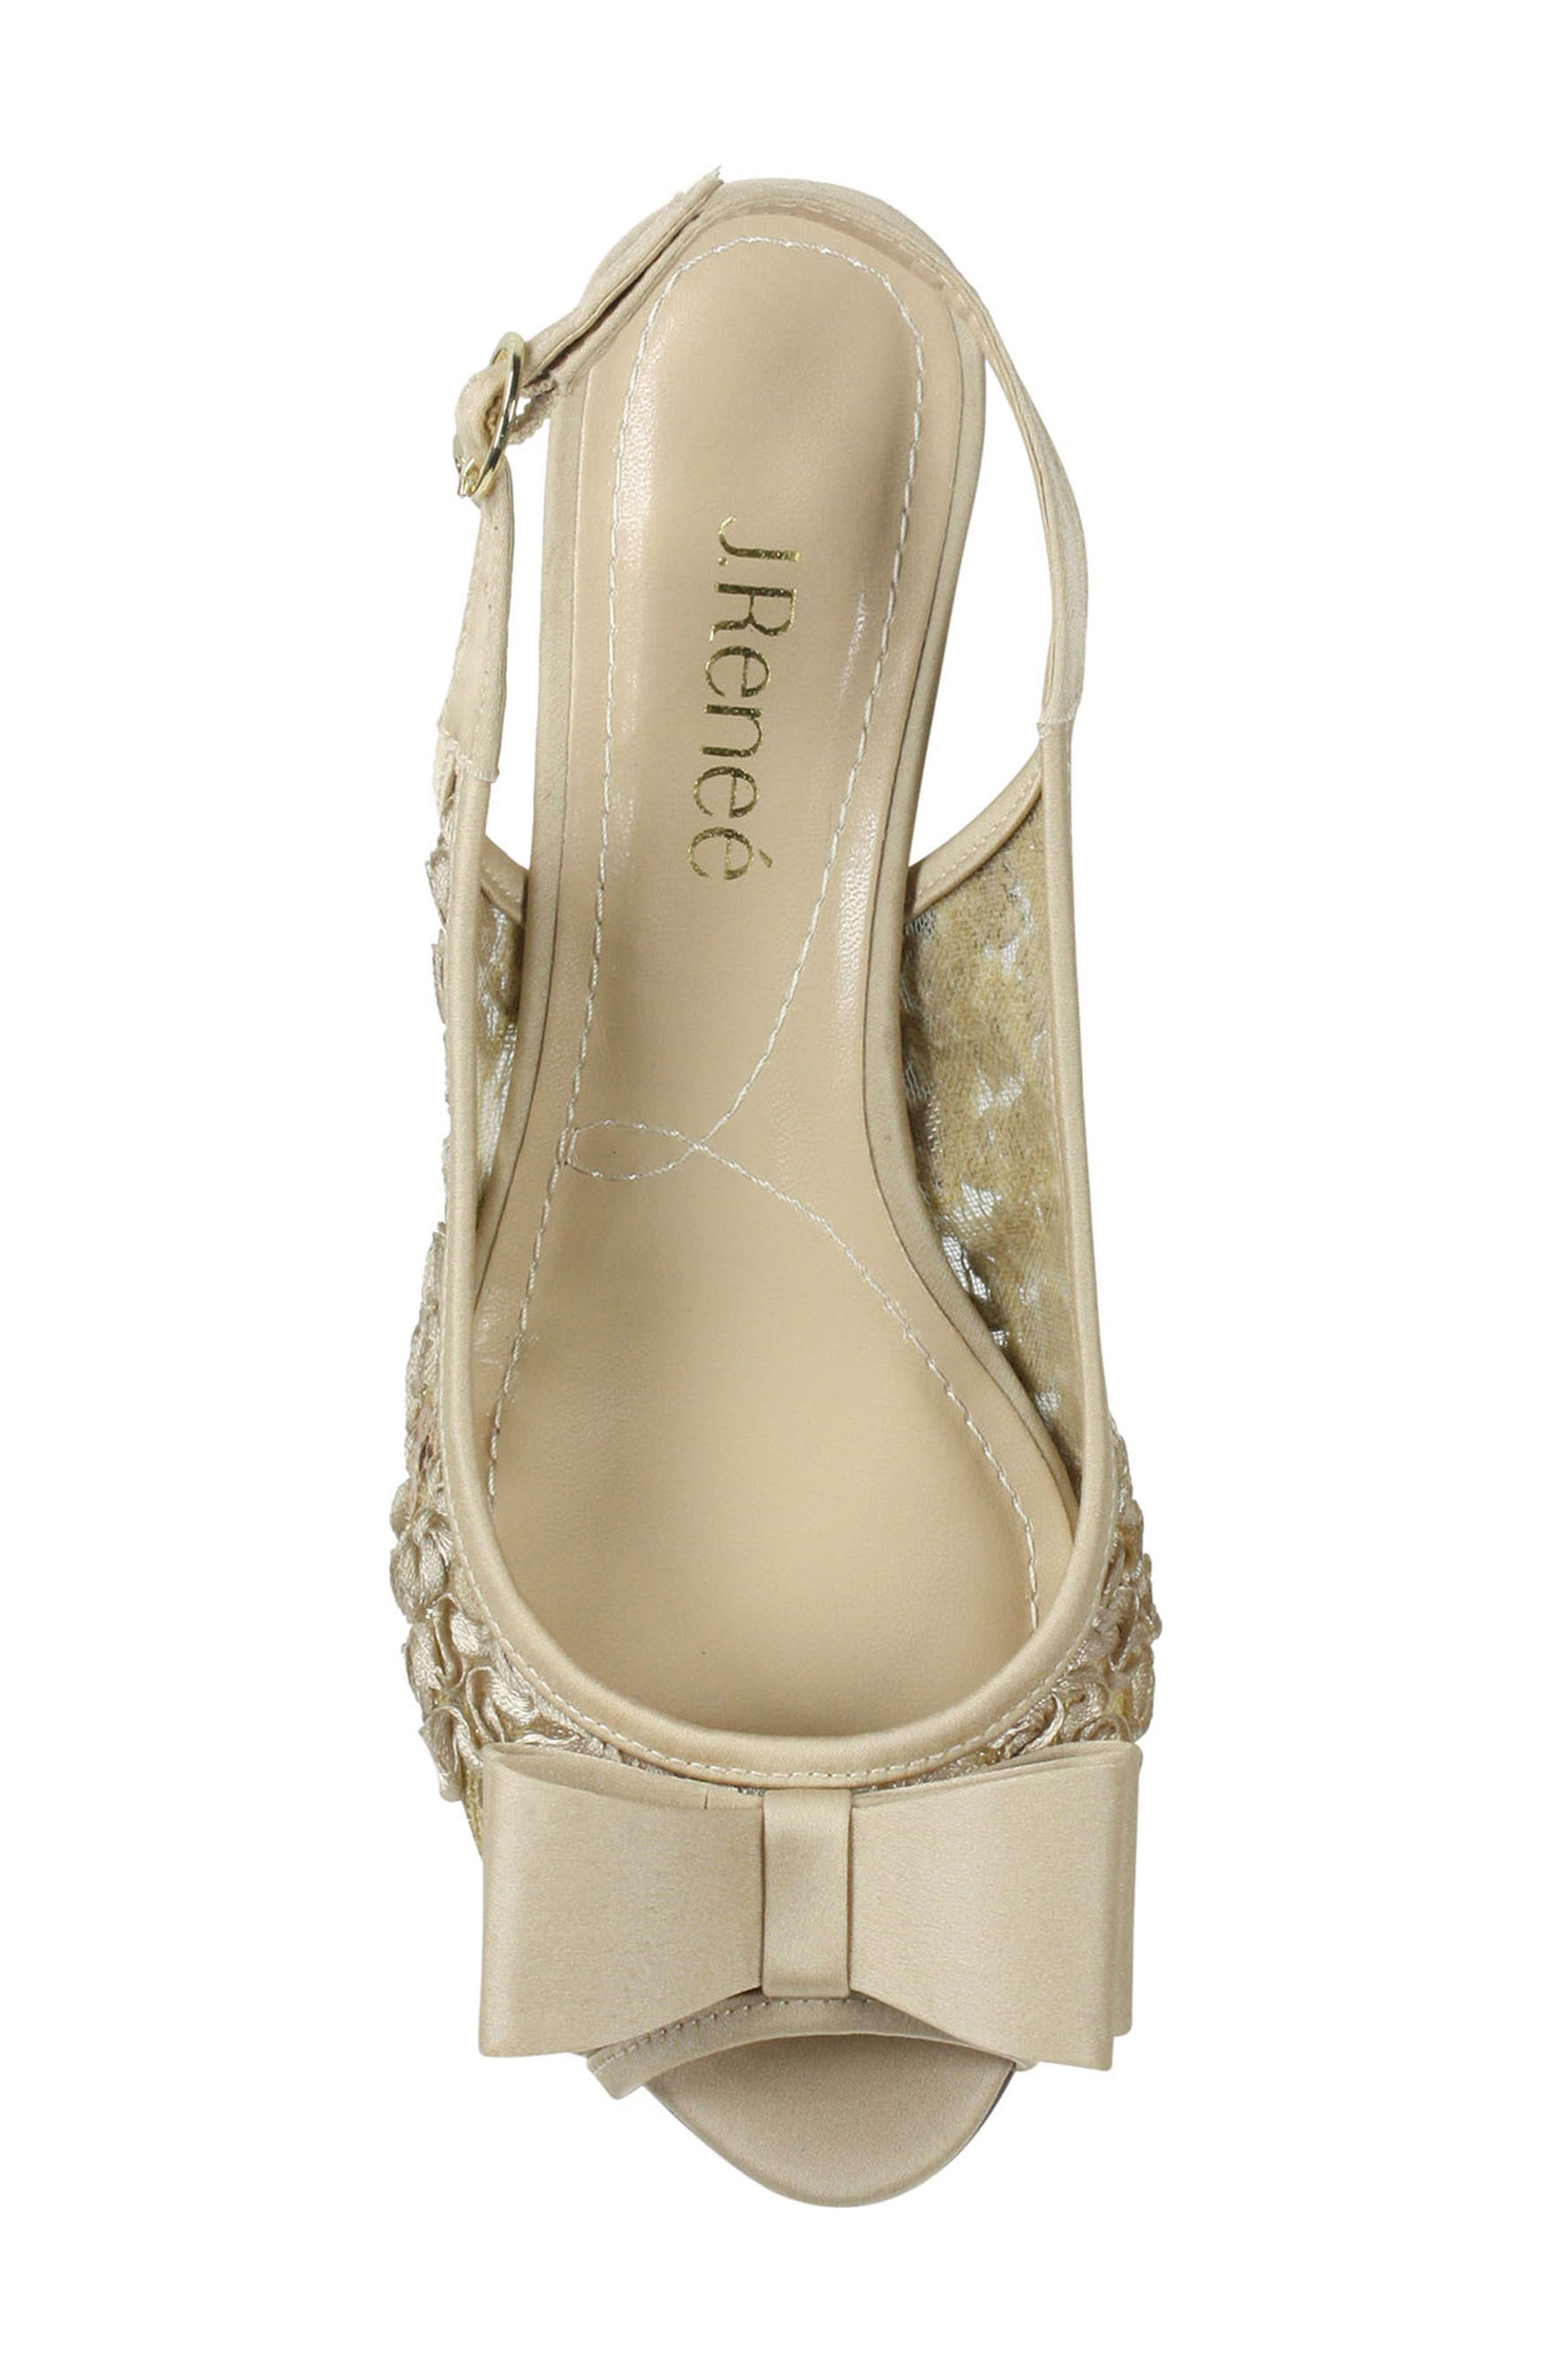 J. RENEÉ, Landan Bow Slingback Sandal, Alternate thumbnail 3, color, CHAMPAGNE